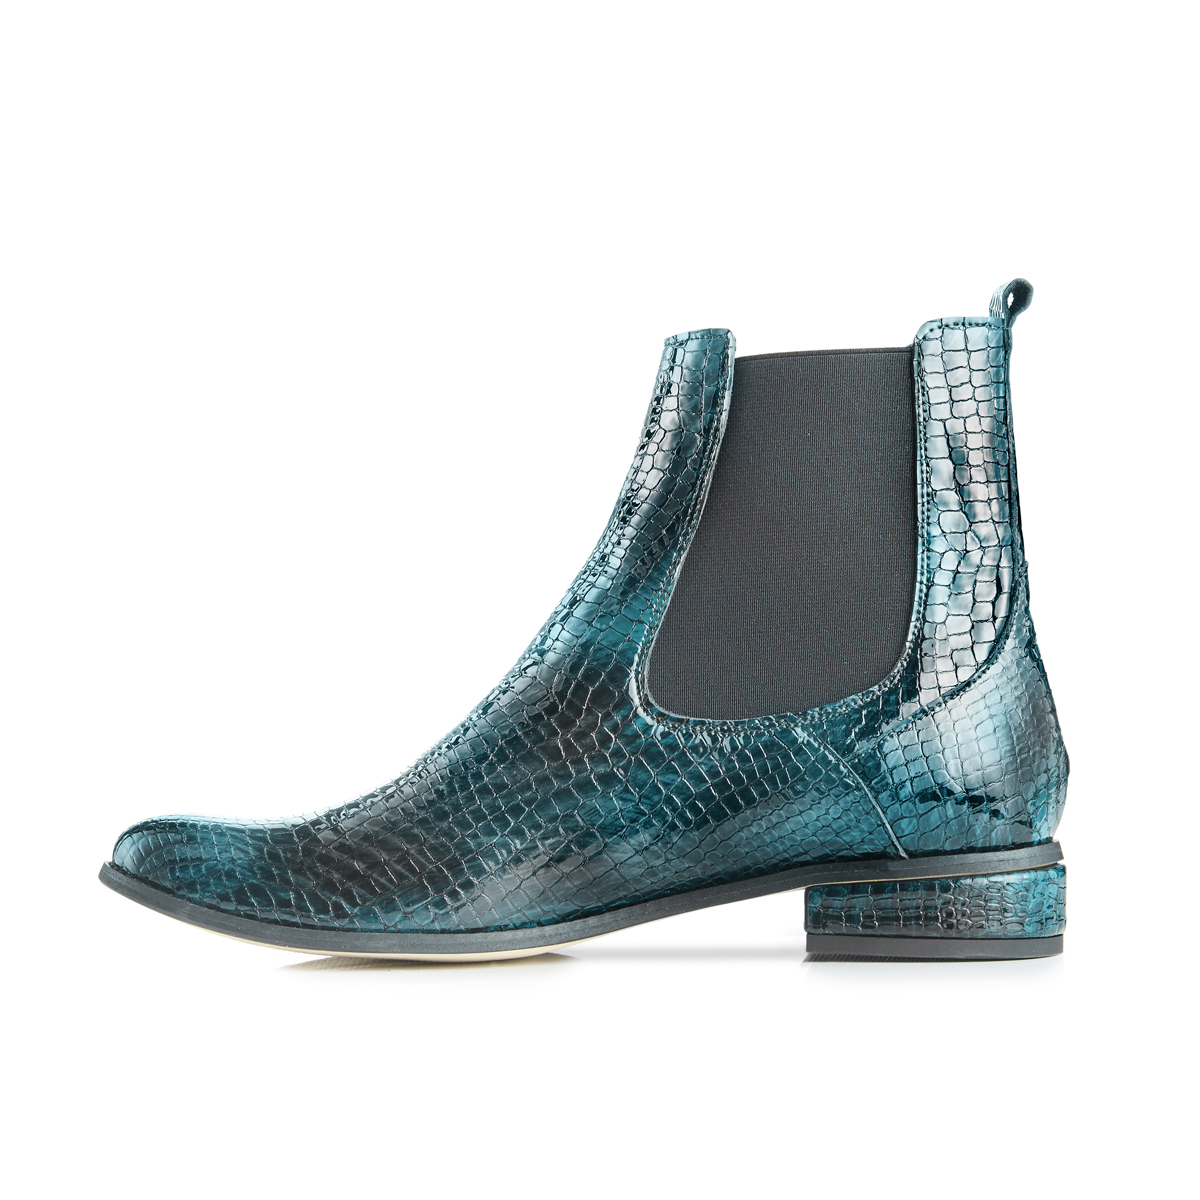 Casey Ankle Boots in Moc Croc - Teal